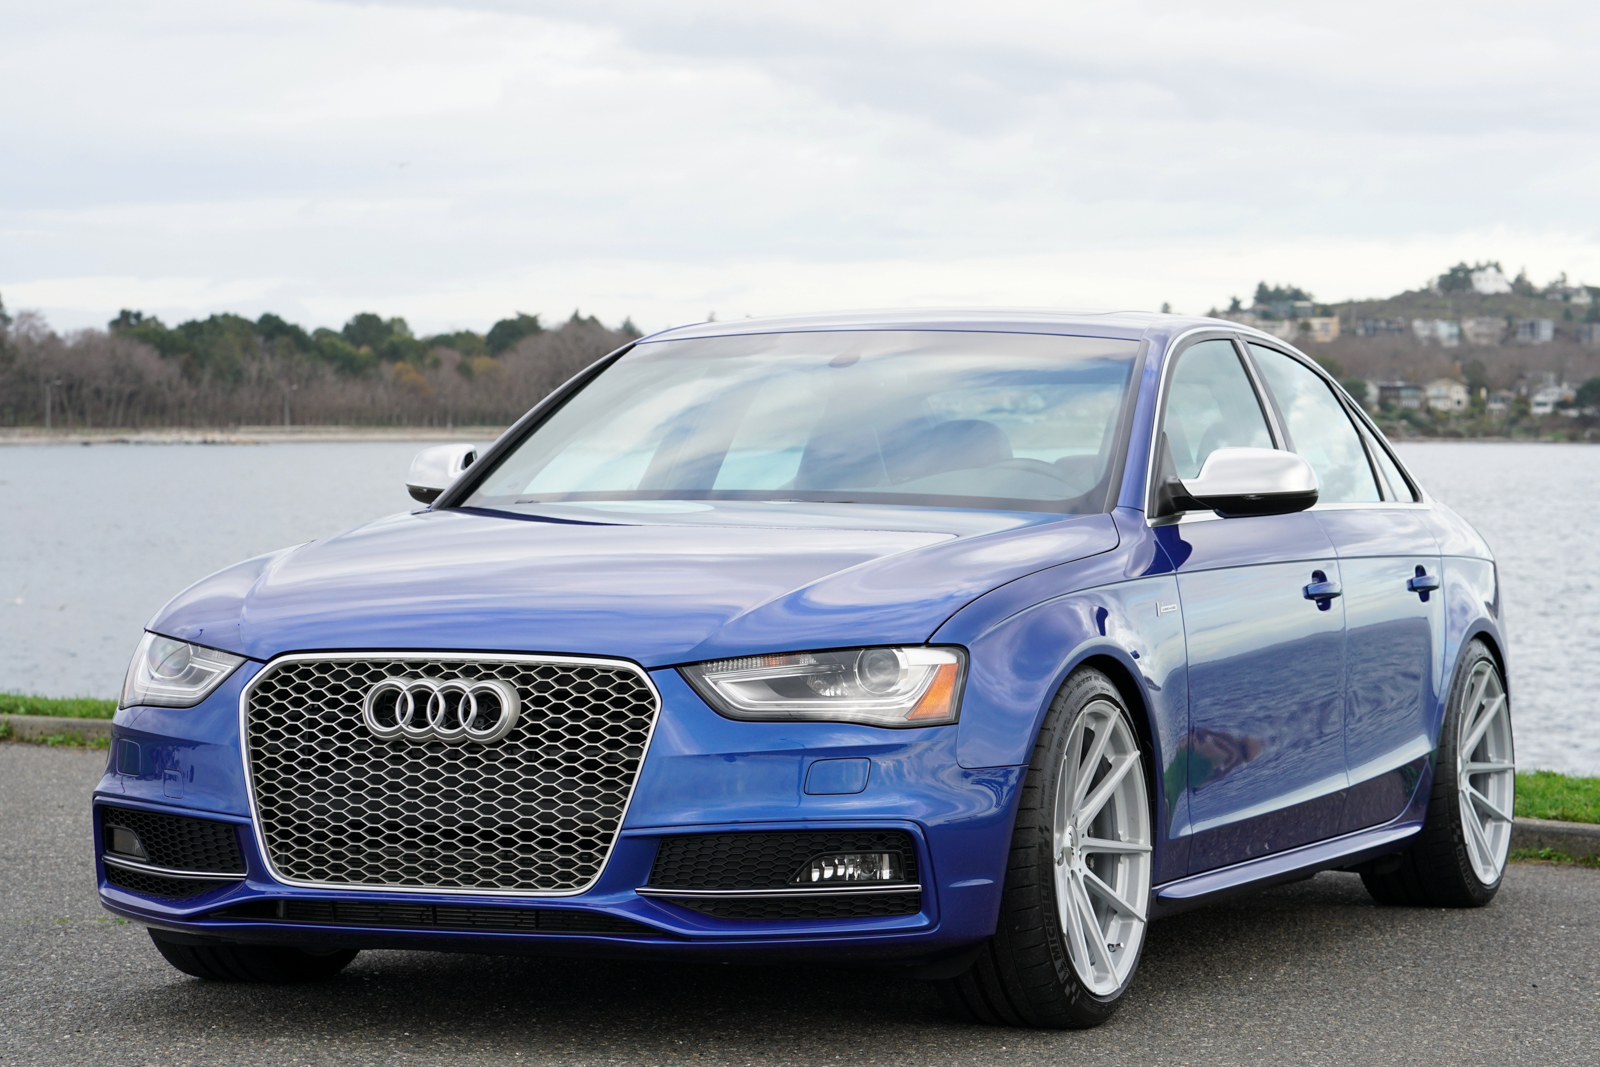 2015 Audi S4 3 0t Technik Quattro For Sale Silver Arrow